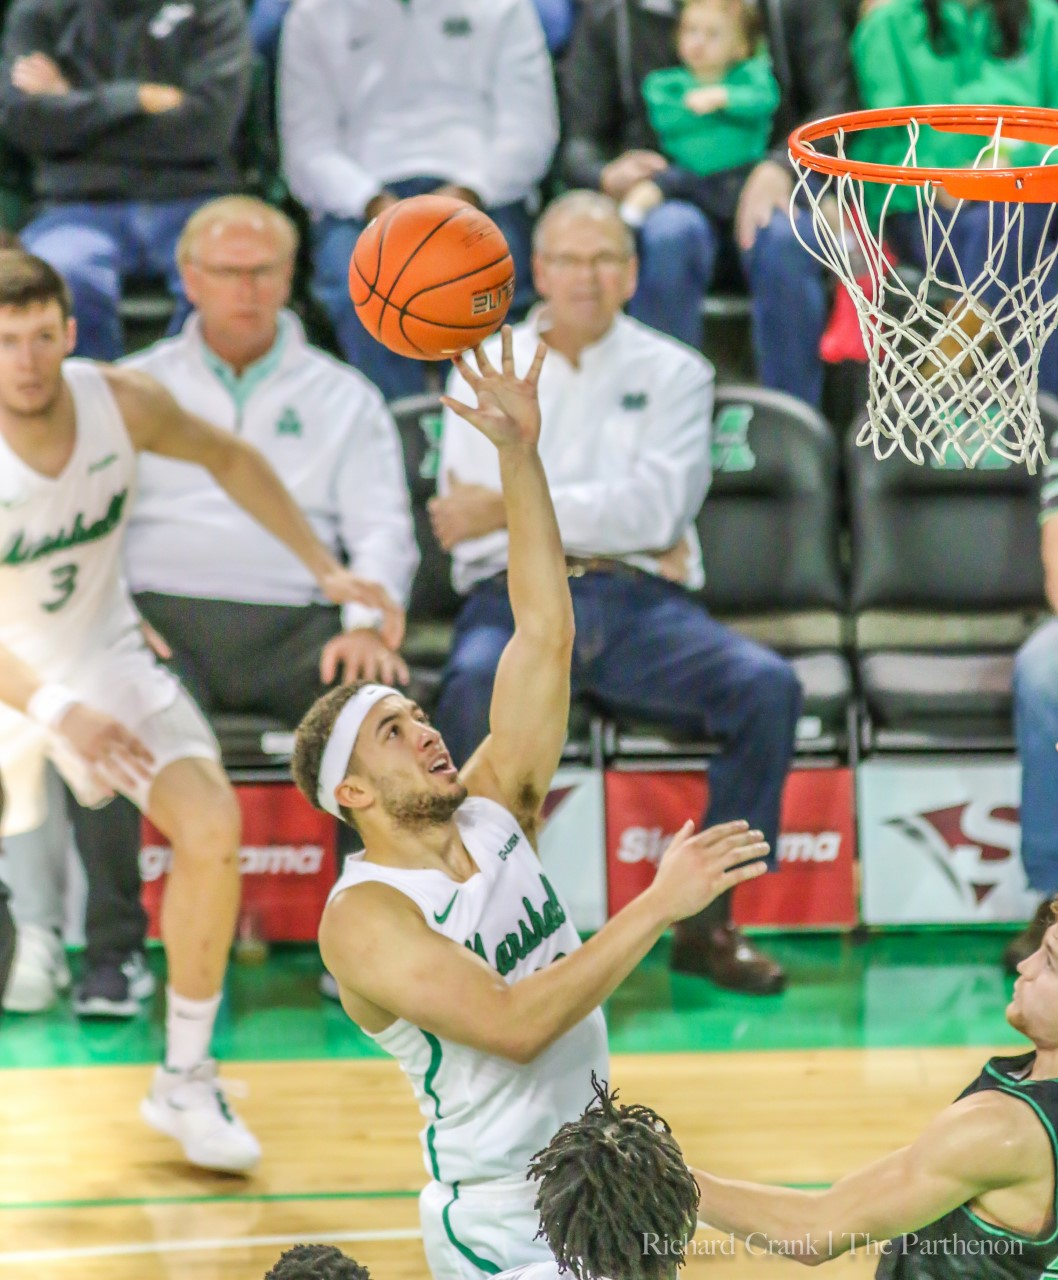 Junior guard Jarrod West floats the ball to the basket at the Cam Henderson Center.